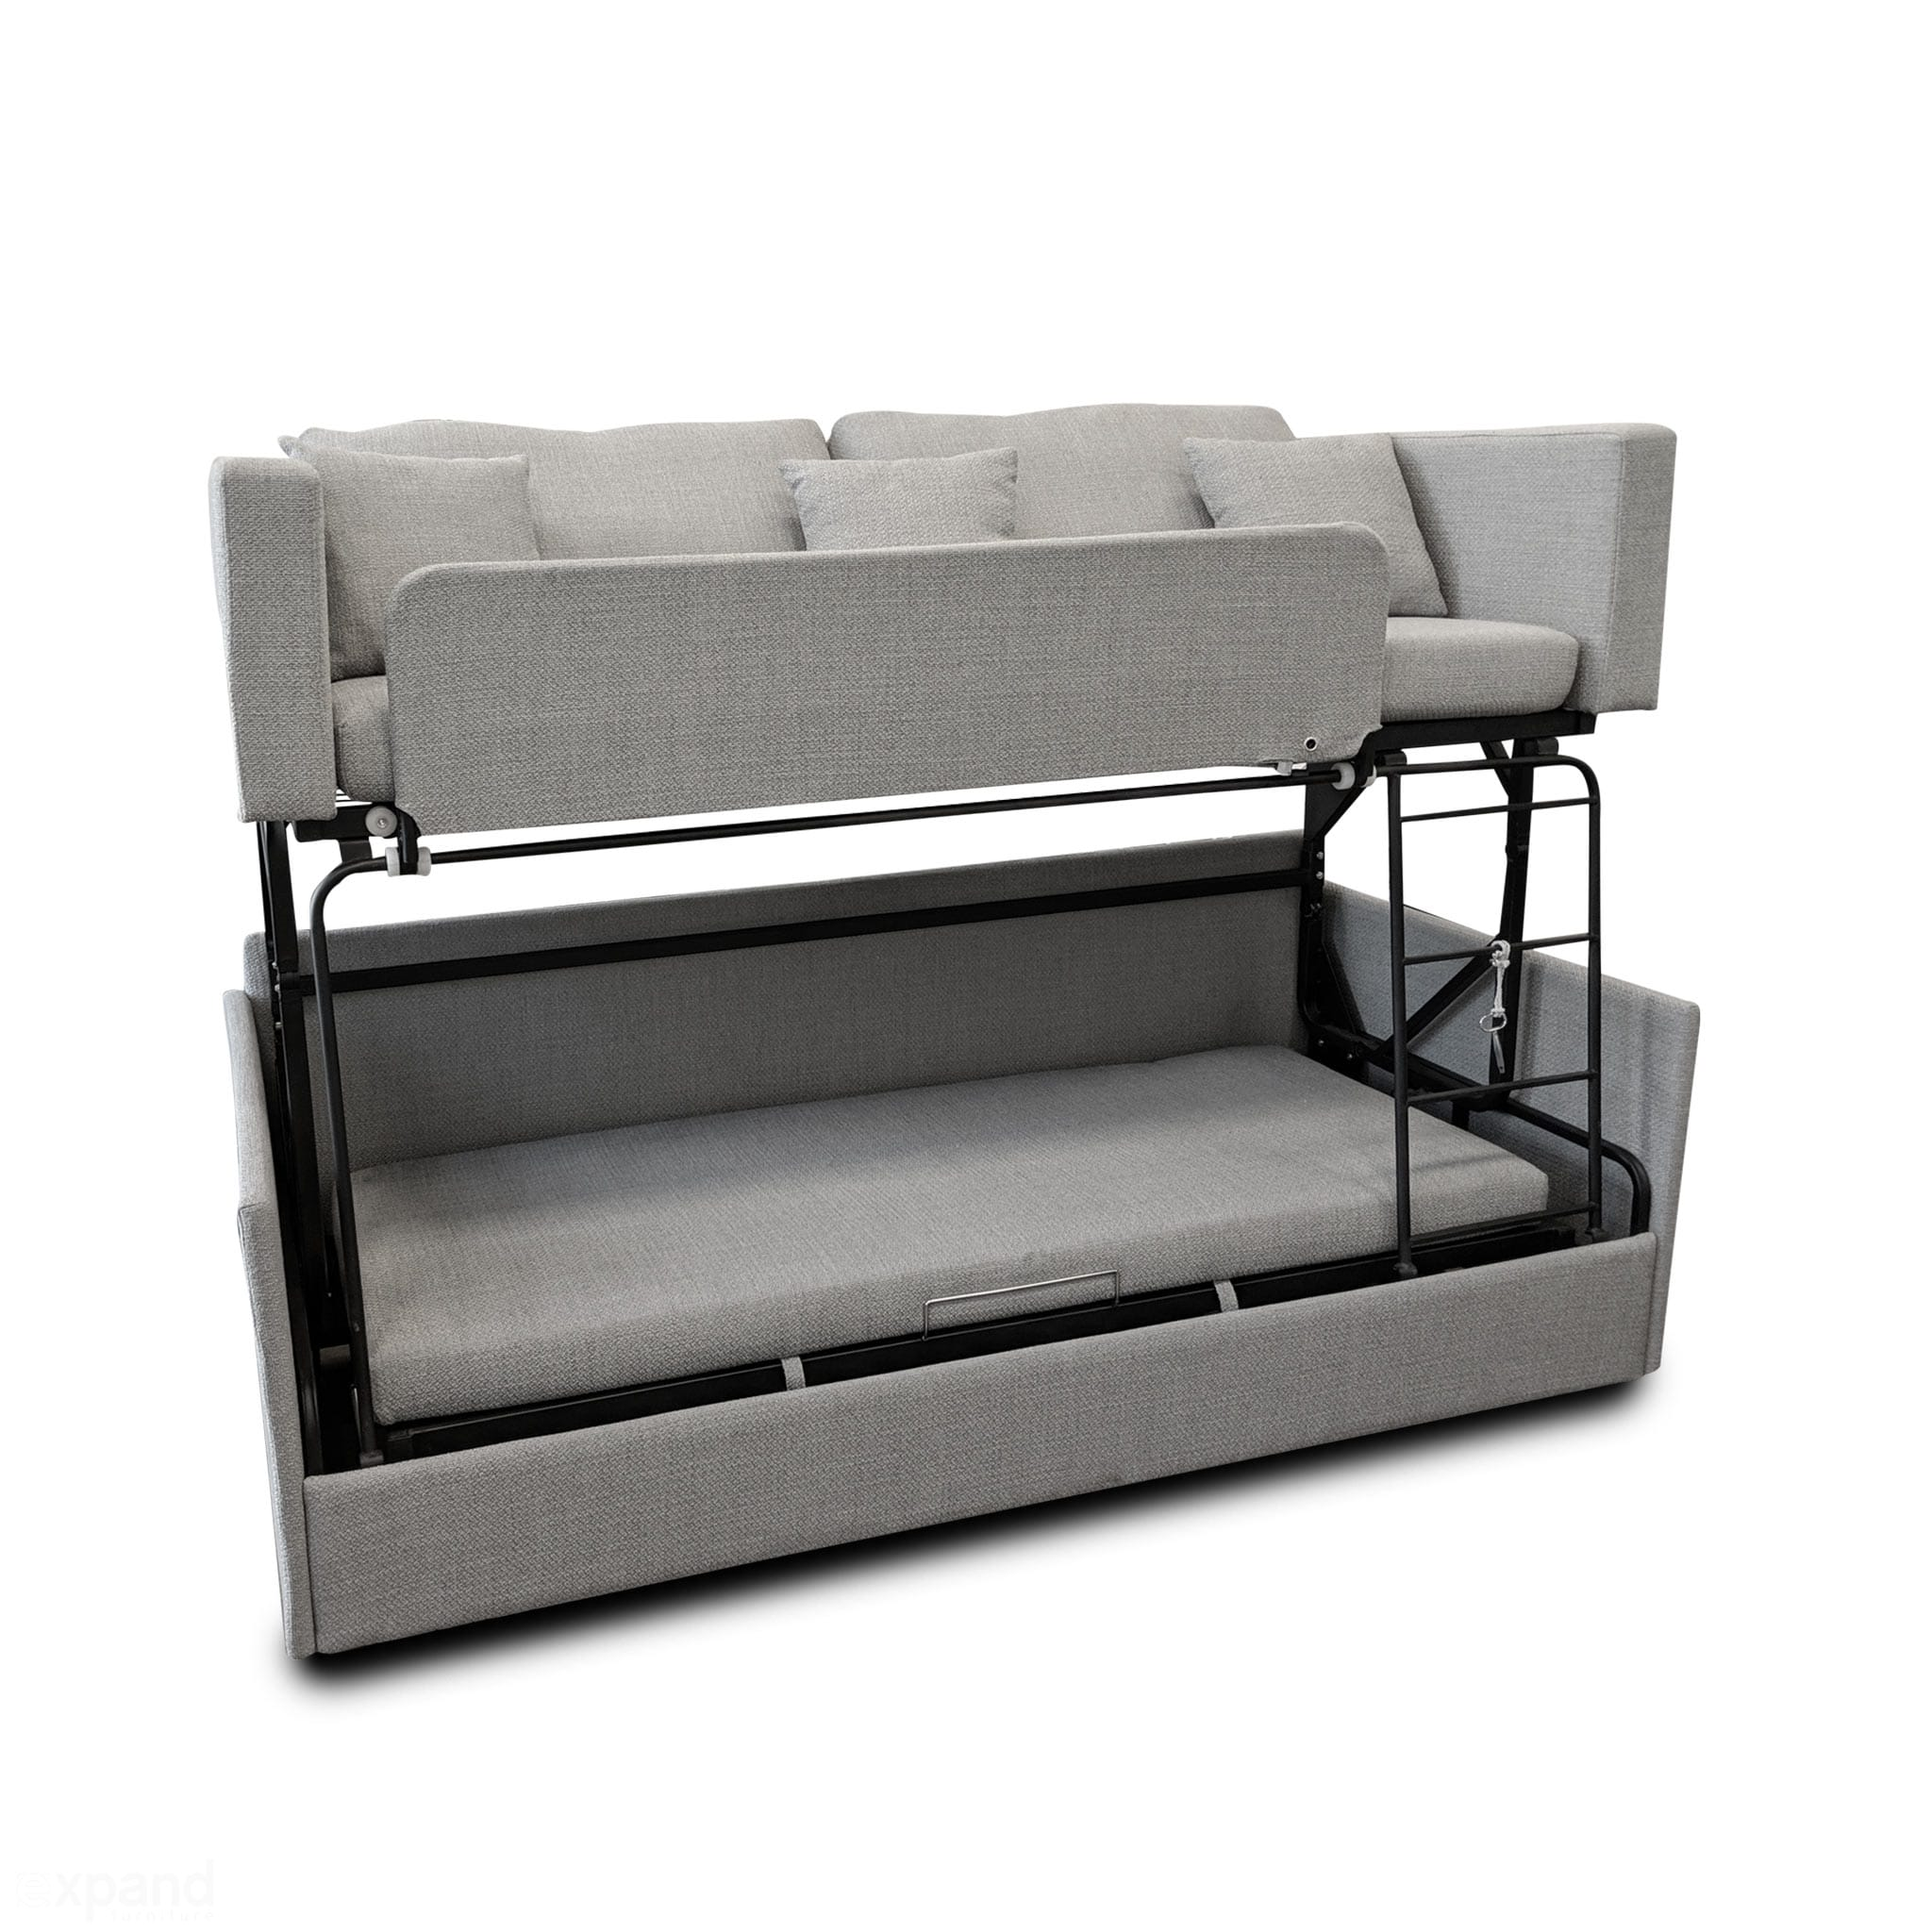 The Dormire Bunk Bed Couch Transformer Expand Furniture Folding Tables Smarter Wall Beds Space Savers